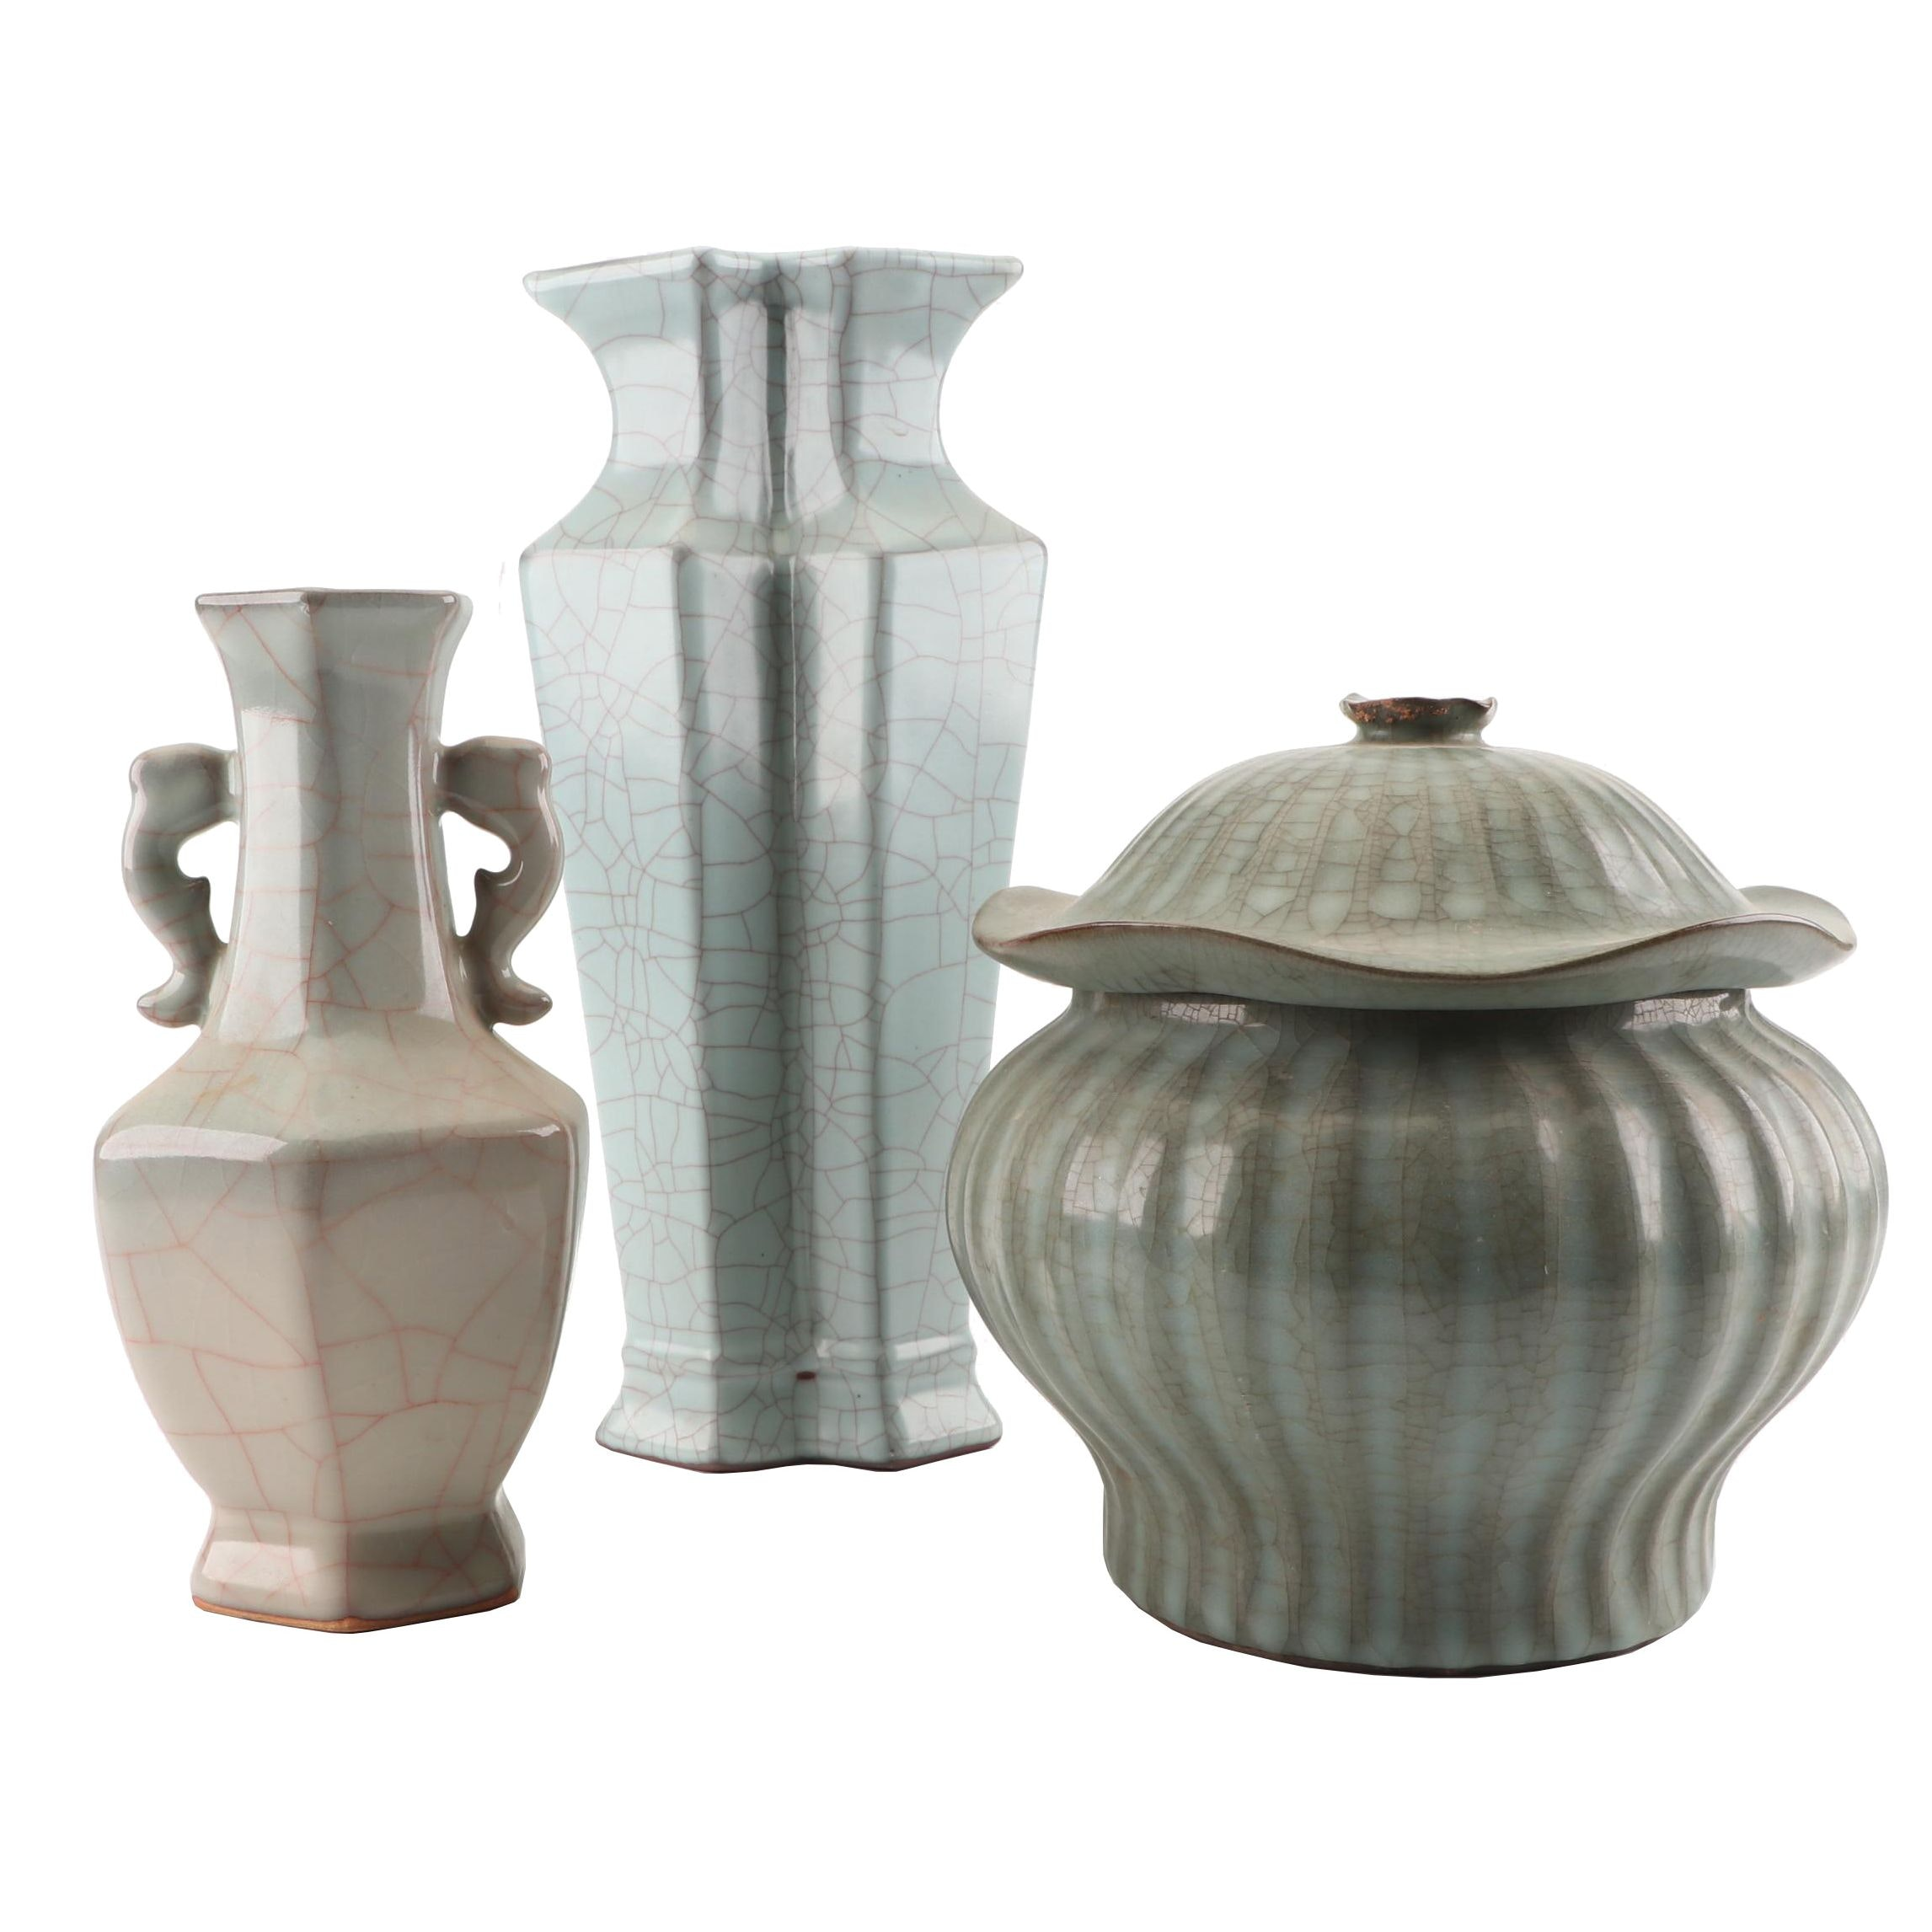 Chinese Guan Style Vases and Jar with Cracked Glaze